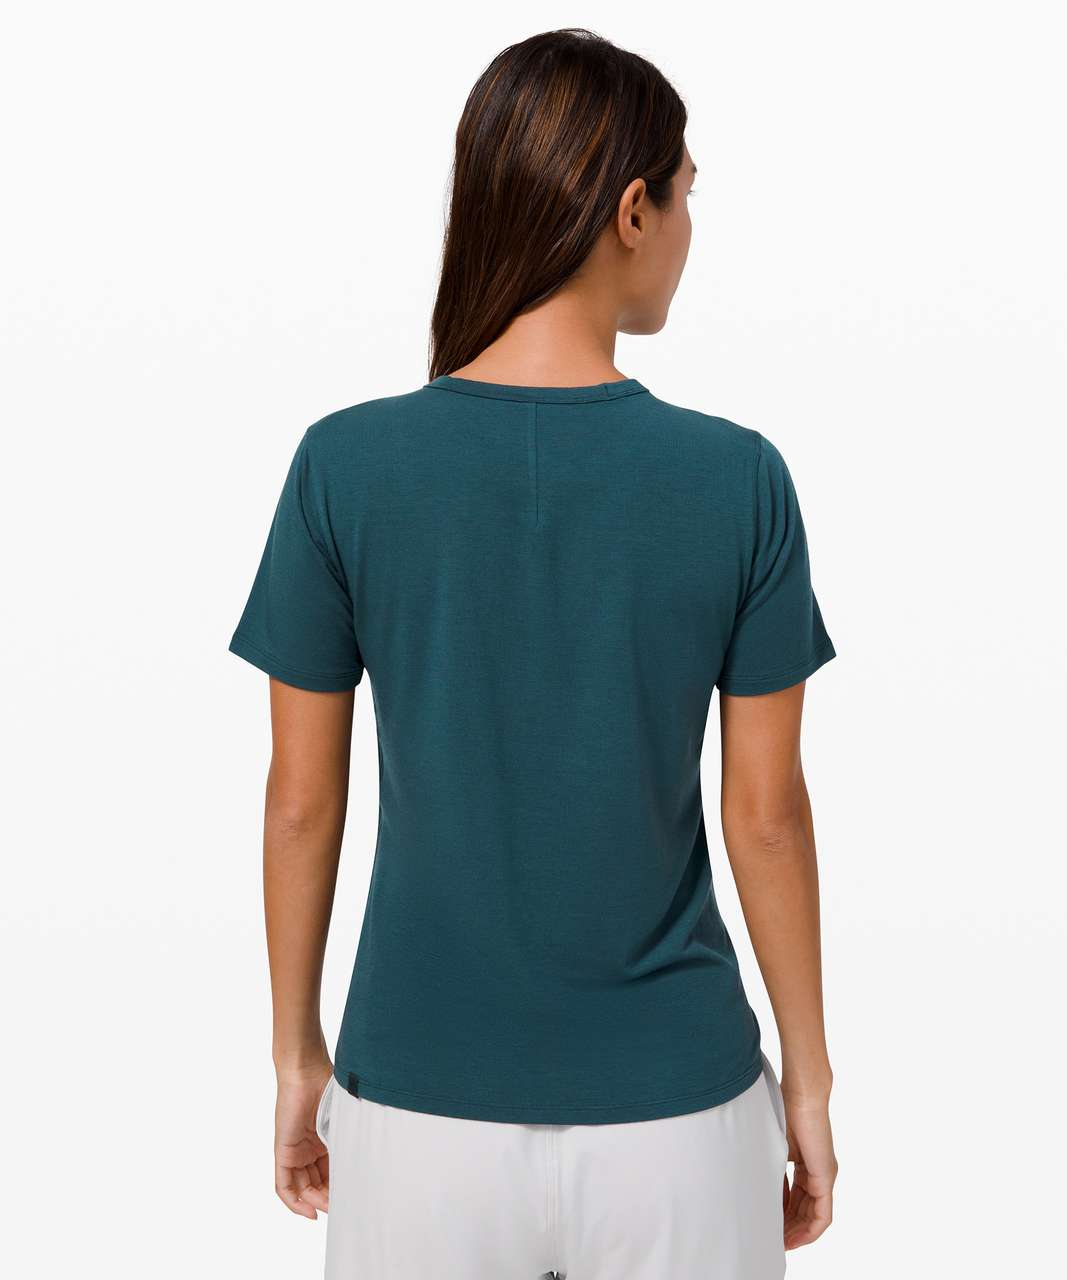 Lululemon Hold Tight Short Sleeve *Rib - Submarine